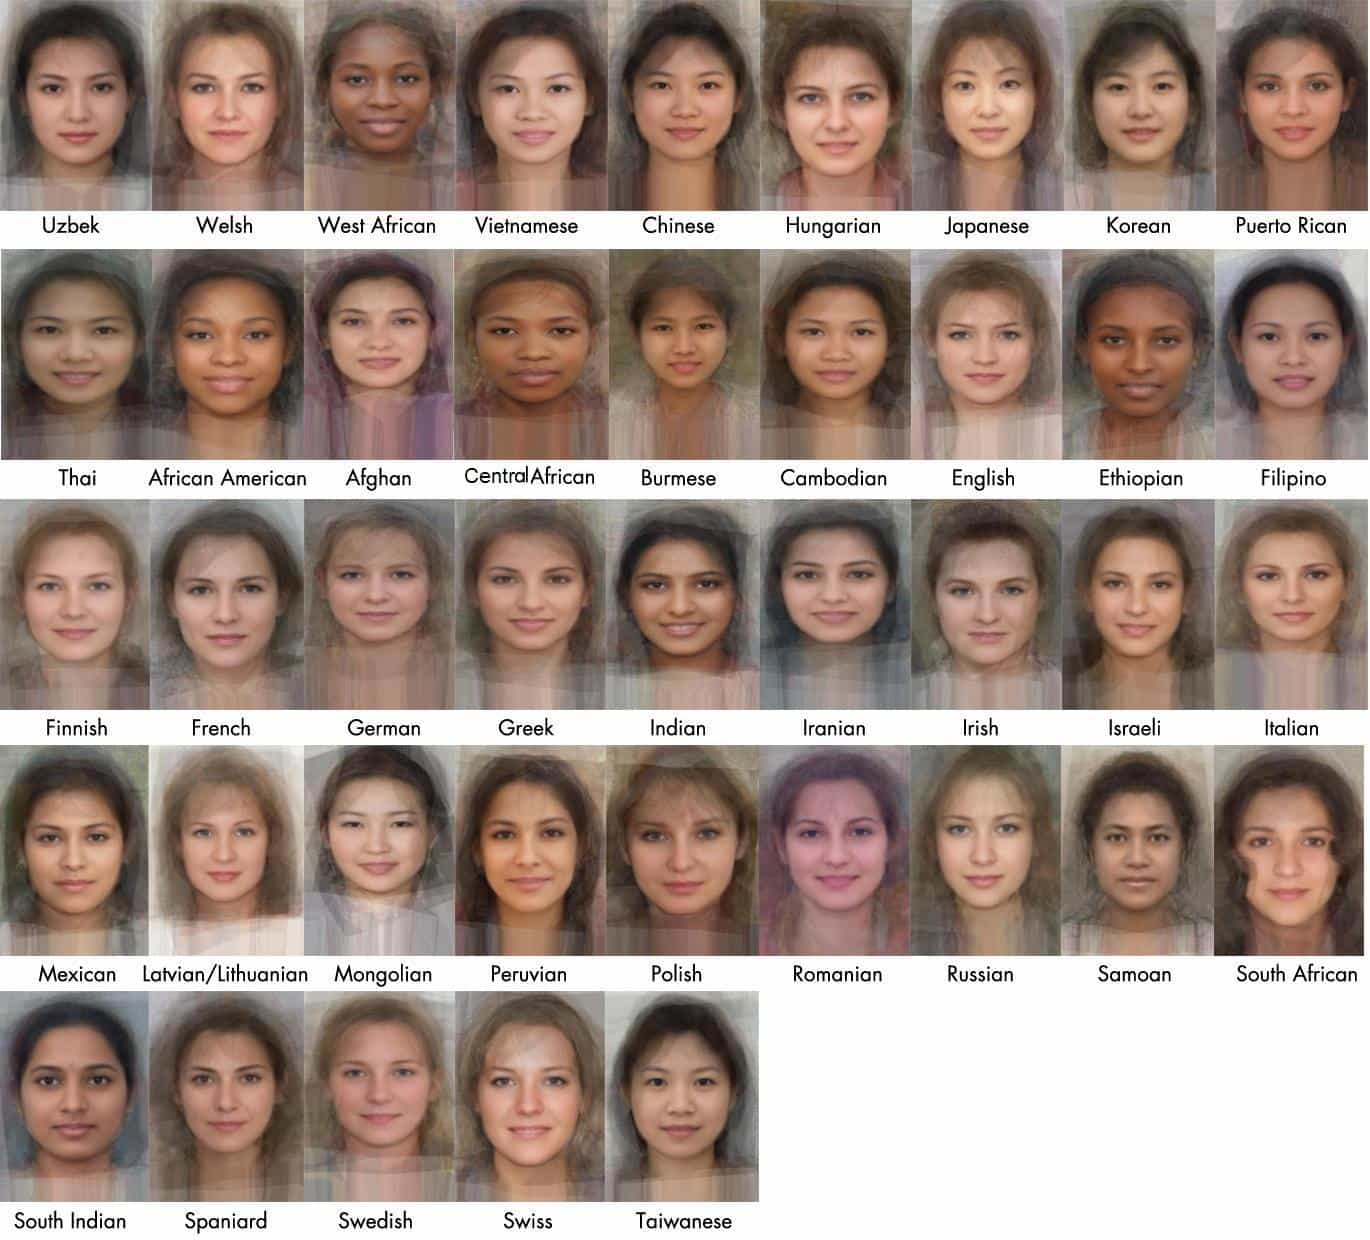 Facial structure recognition